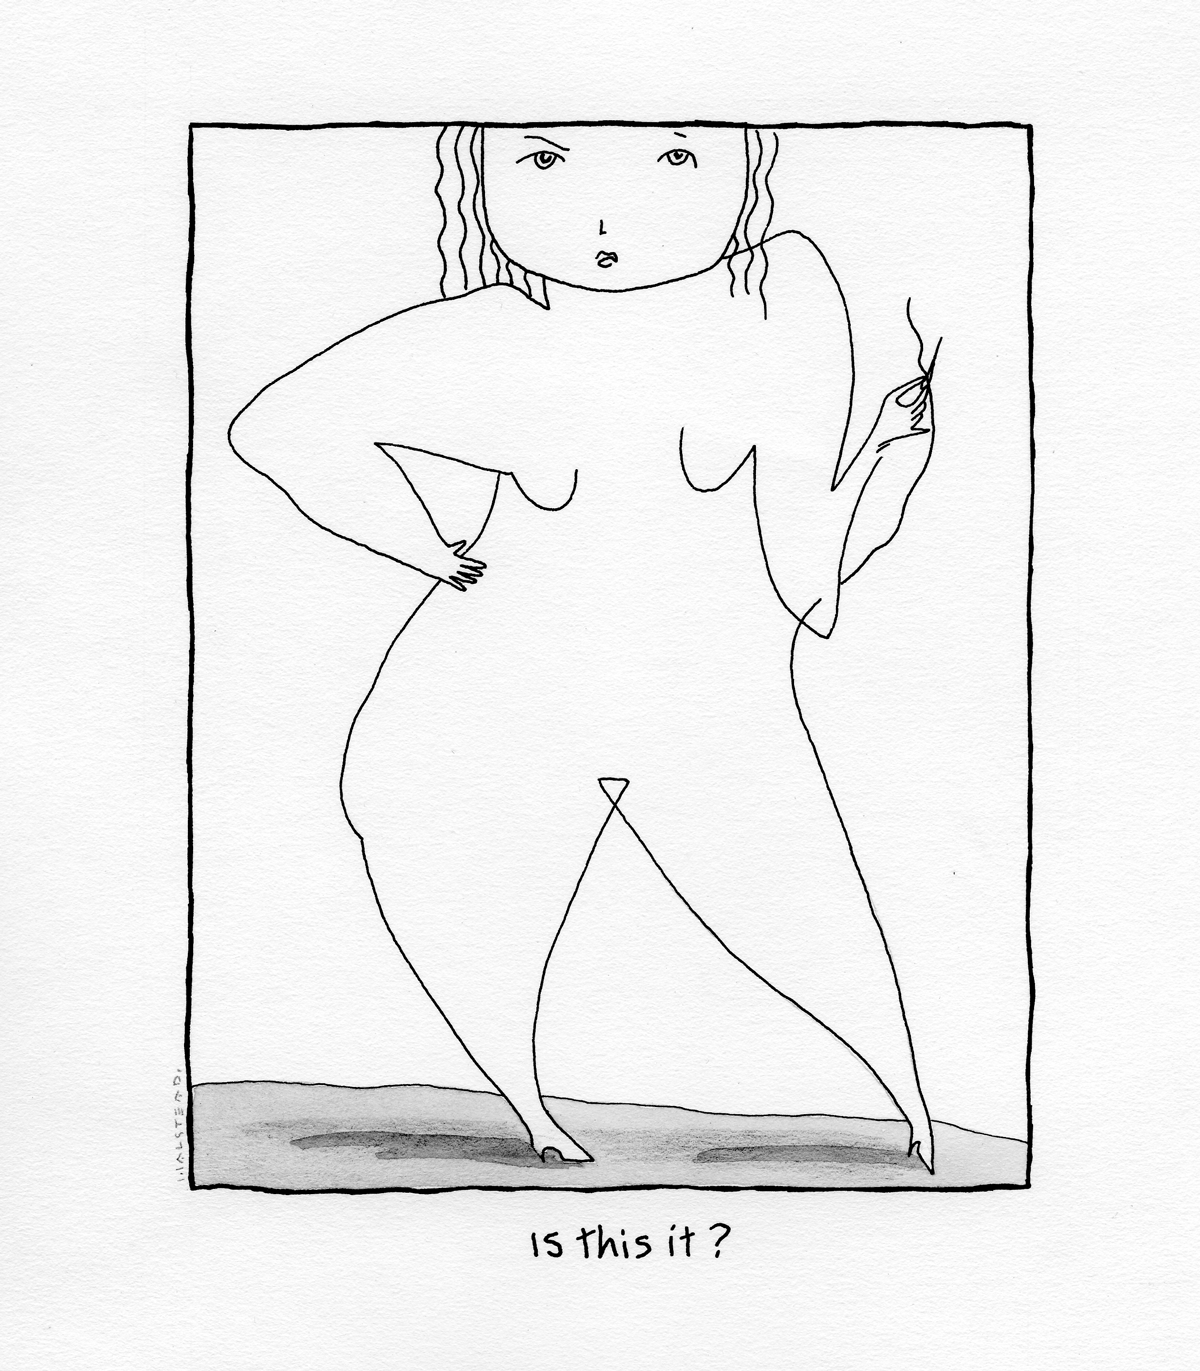 virginiahalstead.com/Drawings/Is-this-it.png